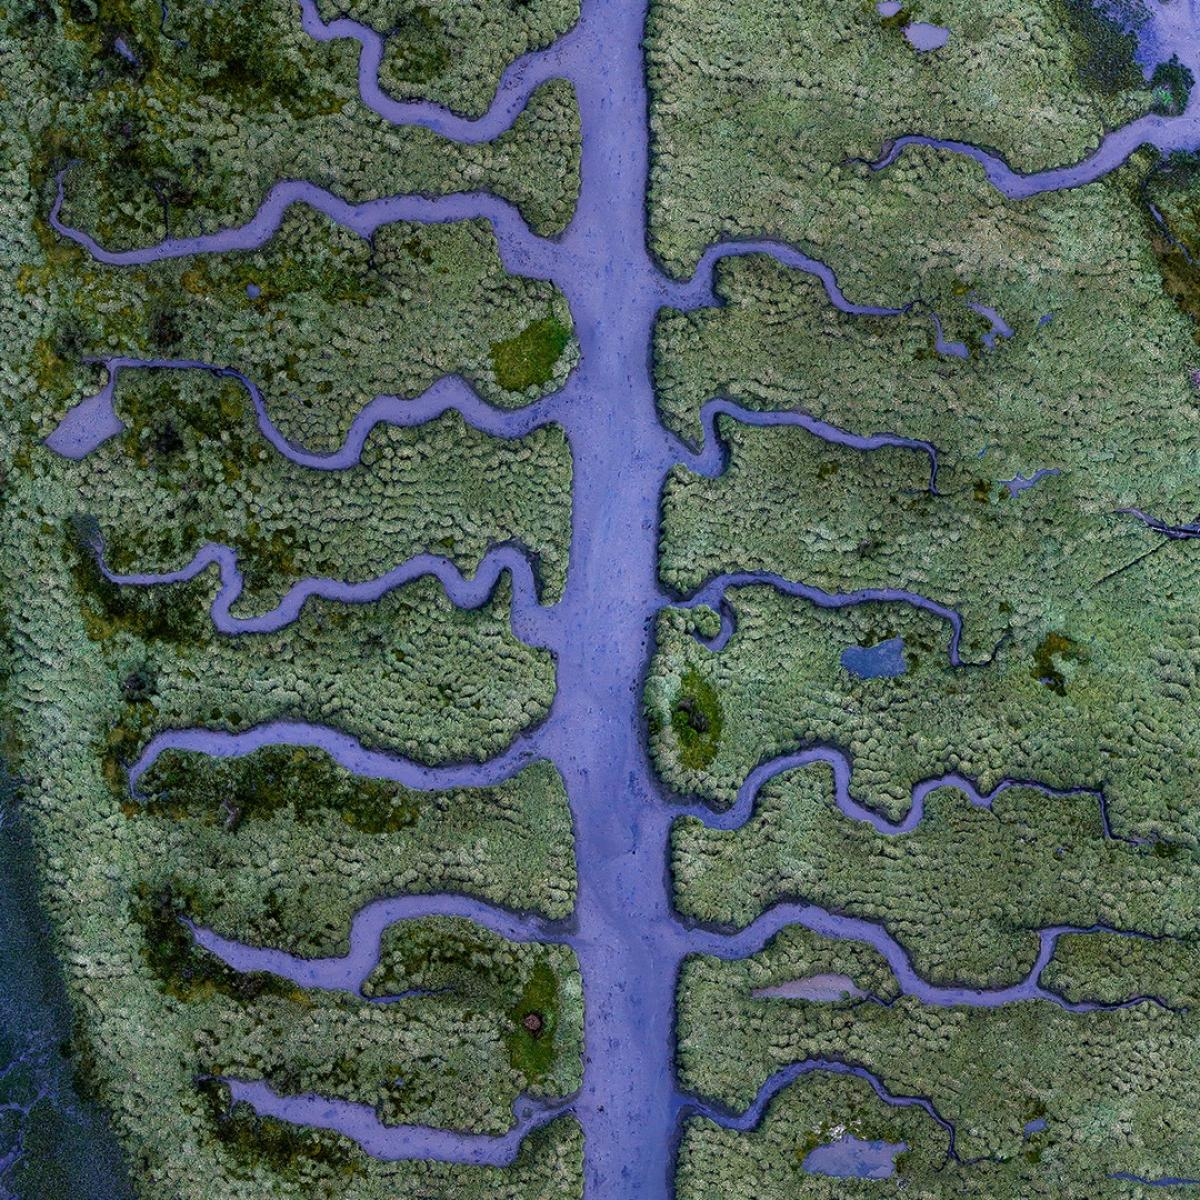 Low tide at blue hour reveals a muddy riverbed of fishbone shaped streams in the middle of a small, but unique part of the salt marsh located at the end of the Betanzos Estuary, near Coruna in northern Spain